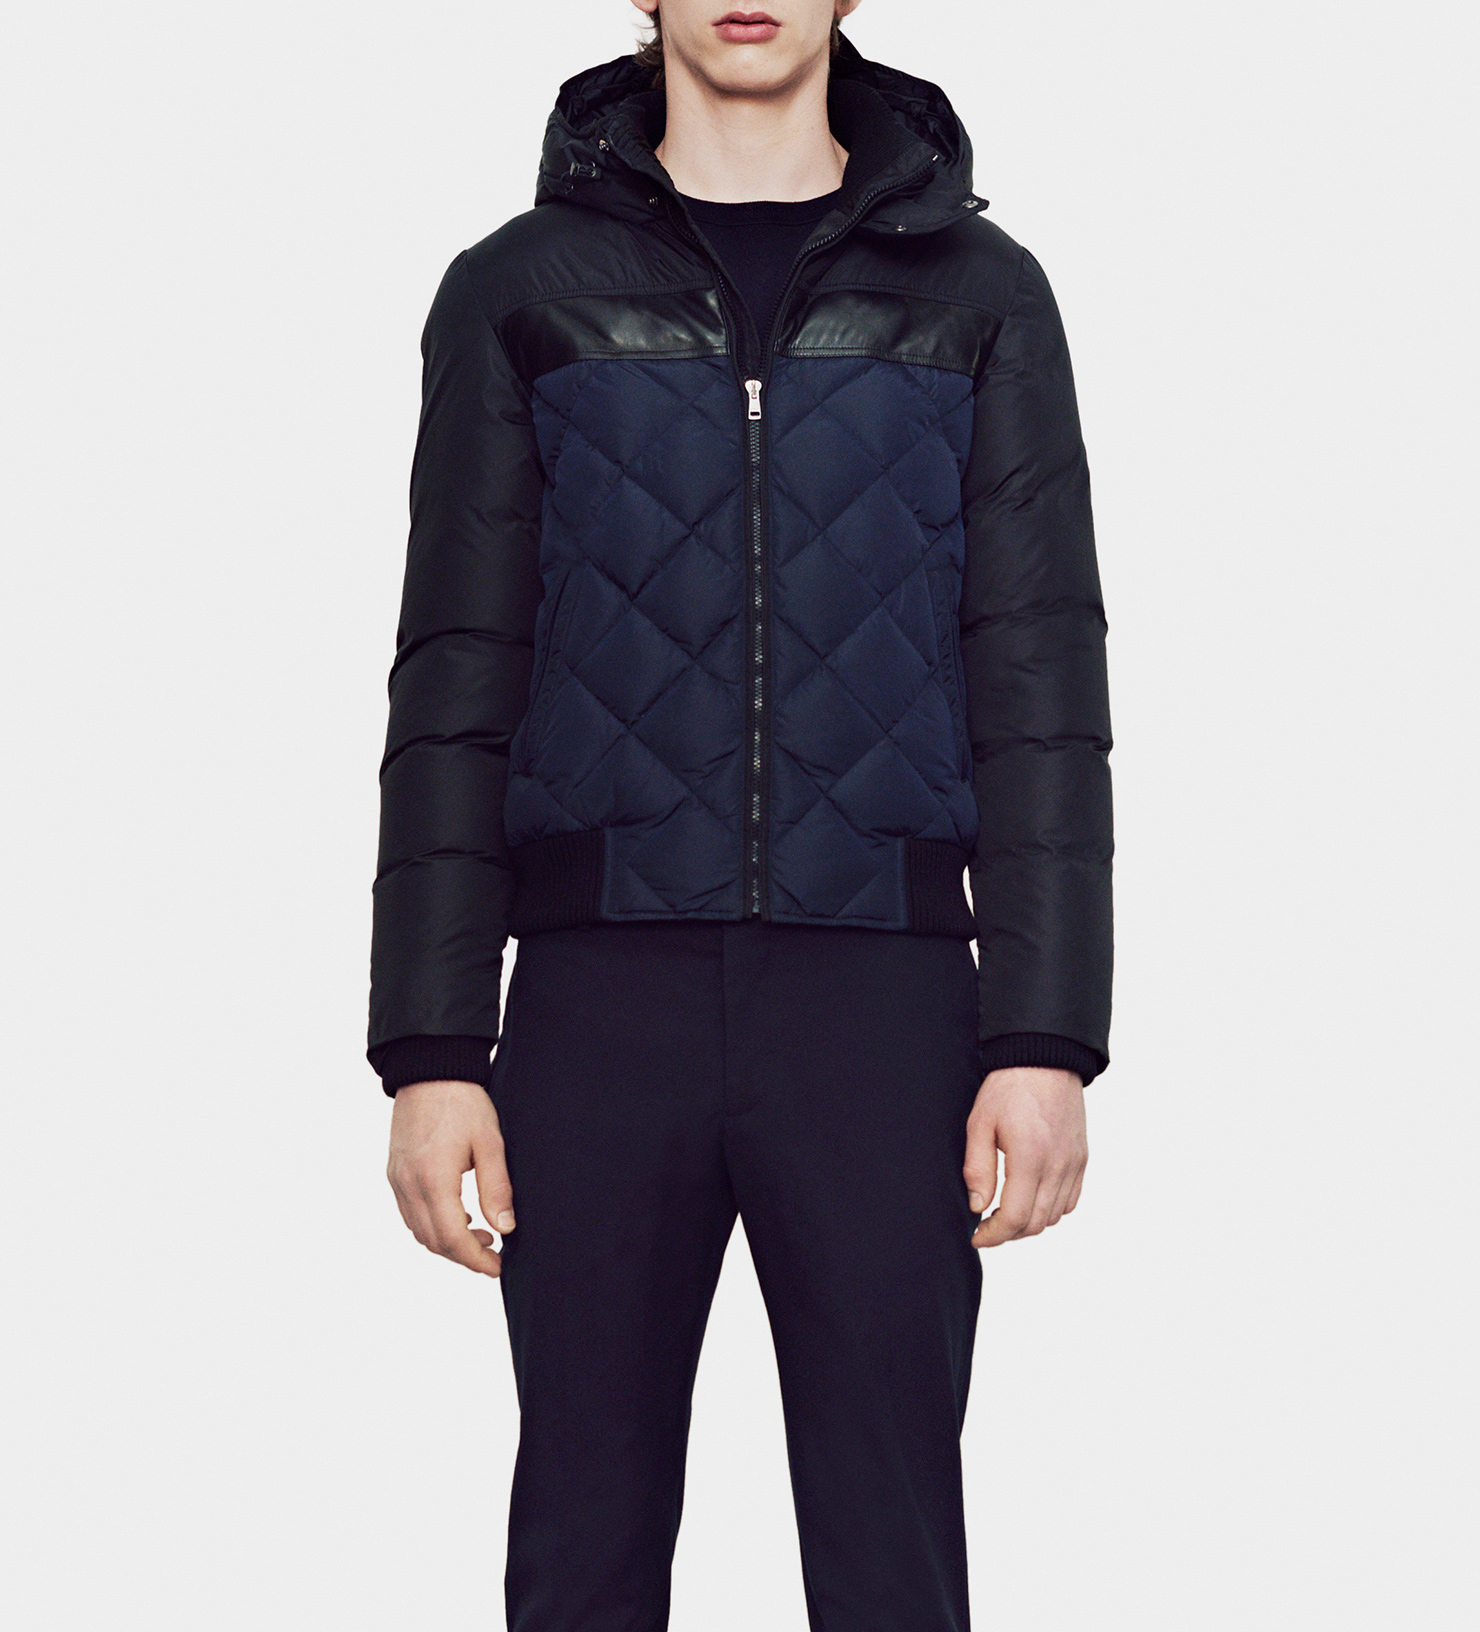 Gucci Lightweight Nylon Quilted Down Filled Jacket in Black for